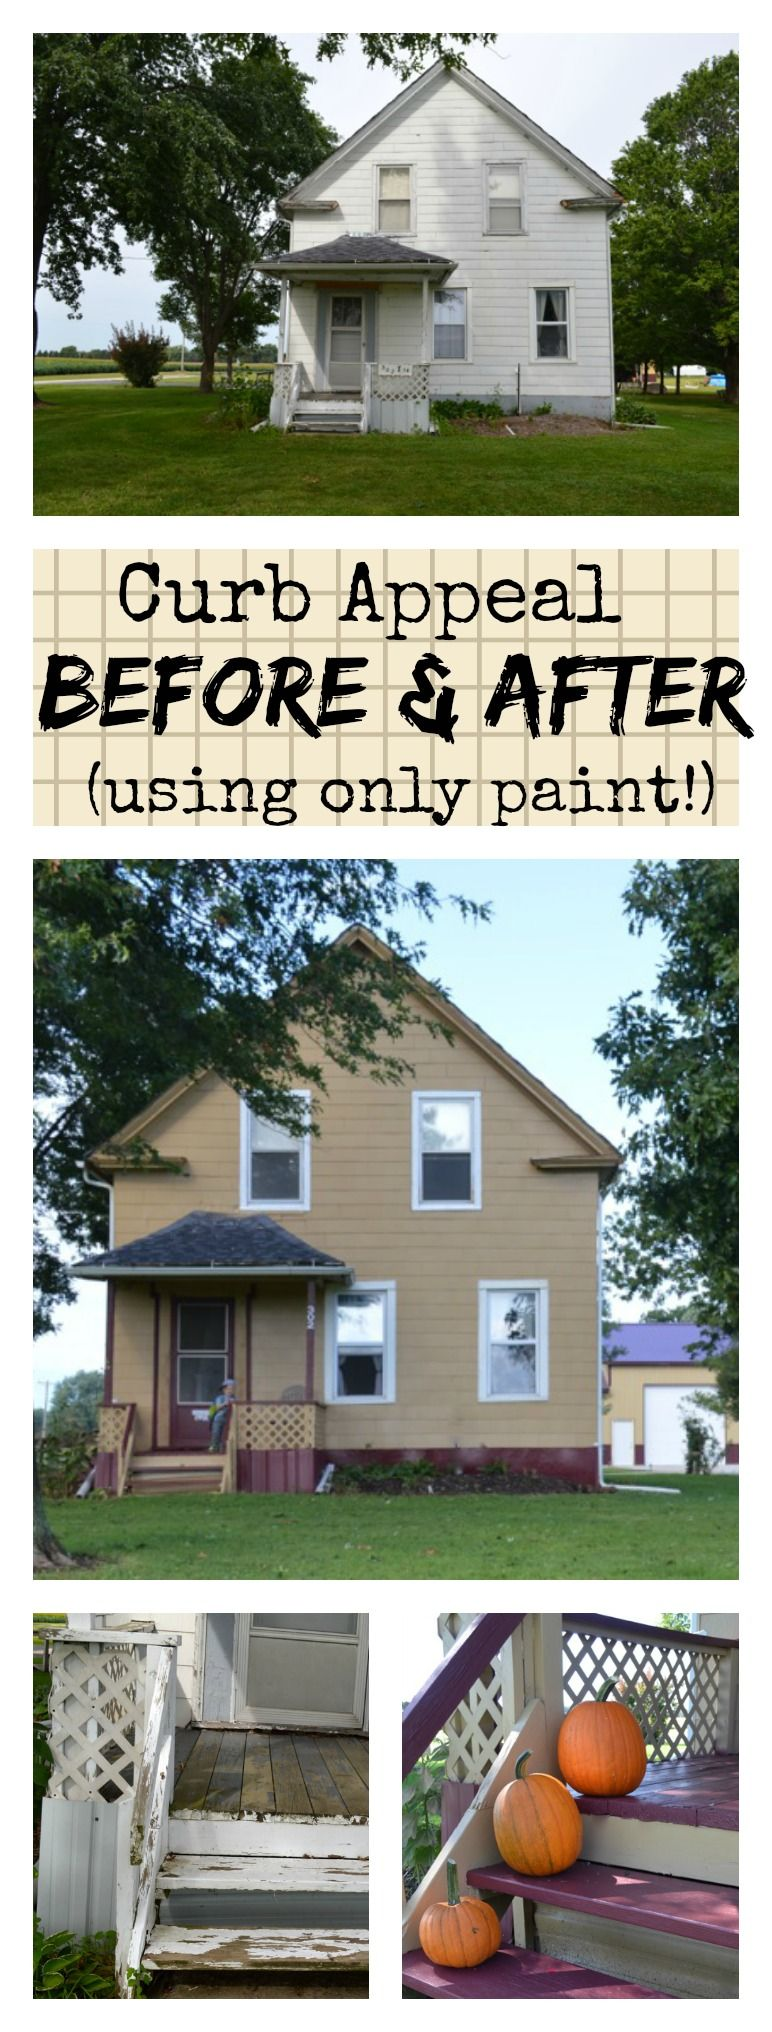 This curb appeal project was brought to you by only paint. This post has great inspiration and tips for painting the exterior of your house (wood, aluminum or even vinyl). And this entire paint job was completed in only one day. A truly amazing before and after.